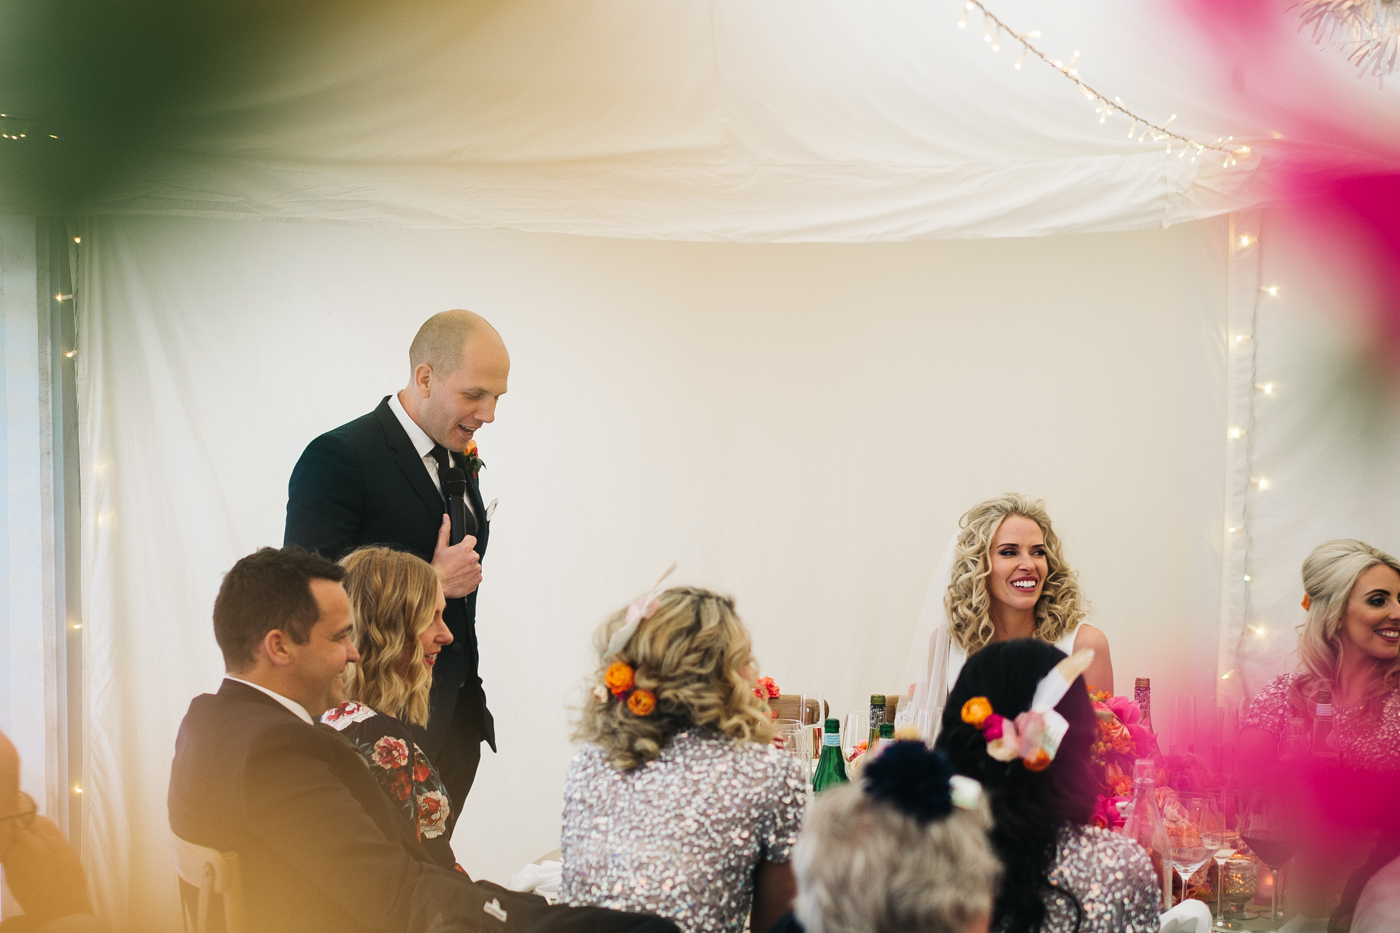 creative-alternative-relaxed-wedding-photography-north-east-teesside-yorshire-photographer-0068.jpg